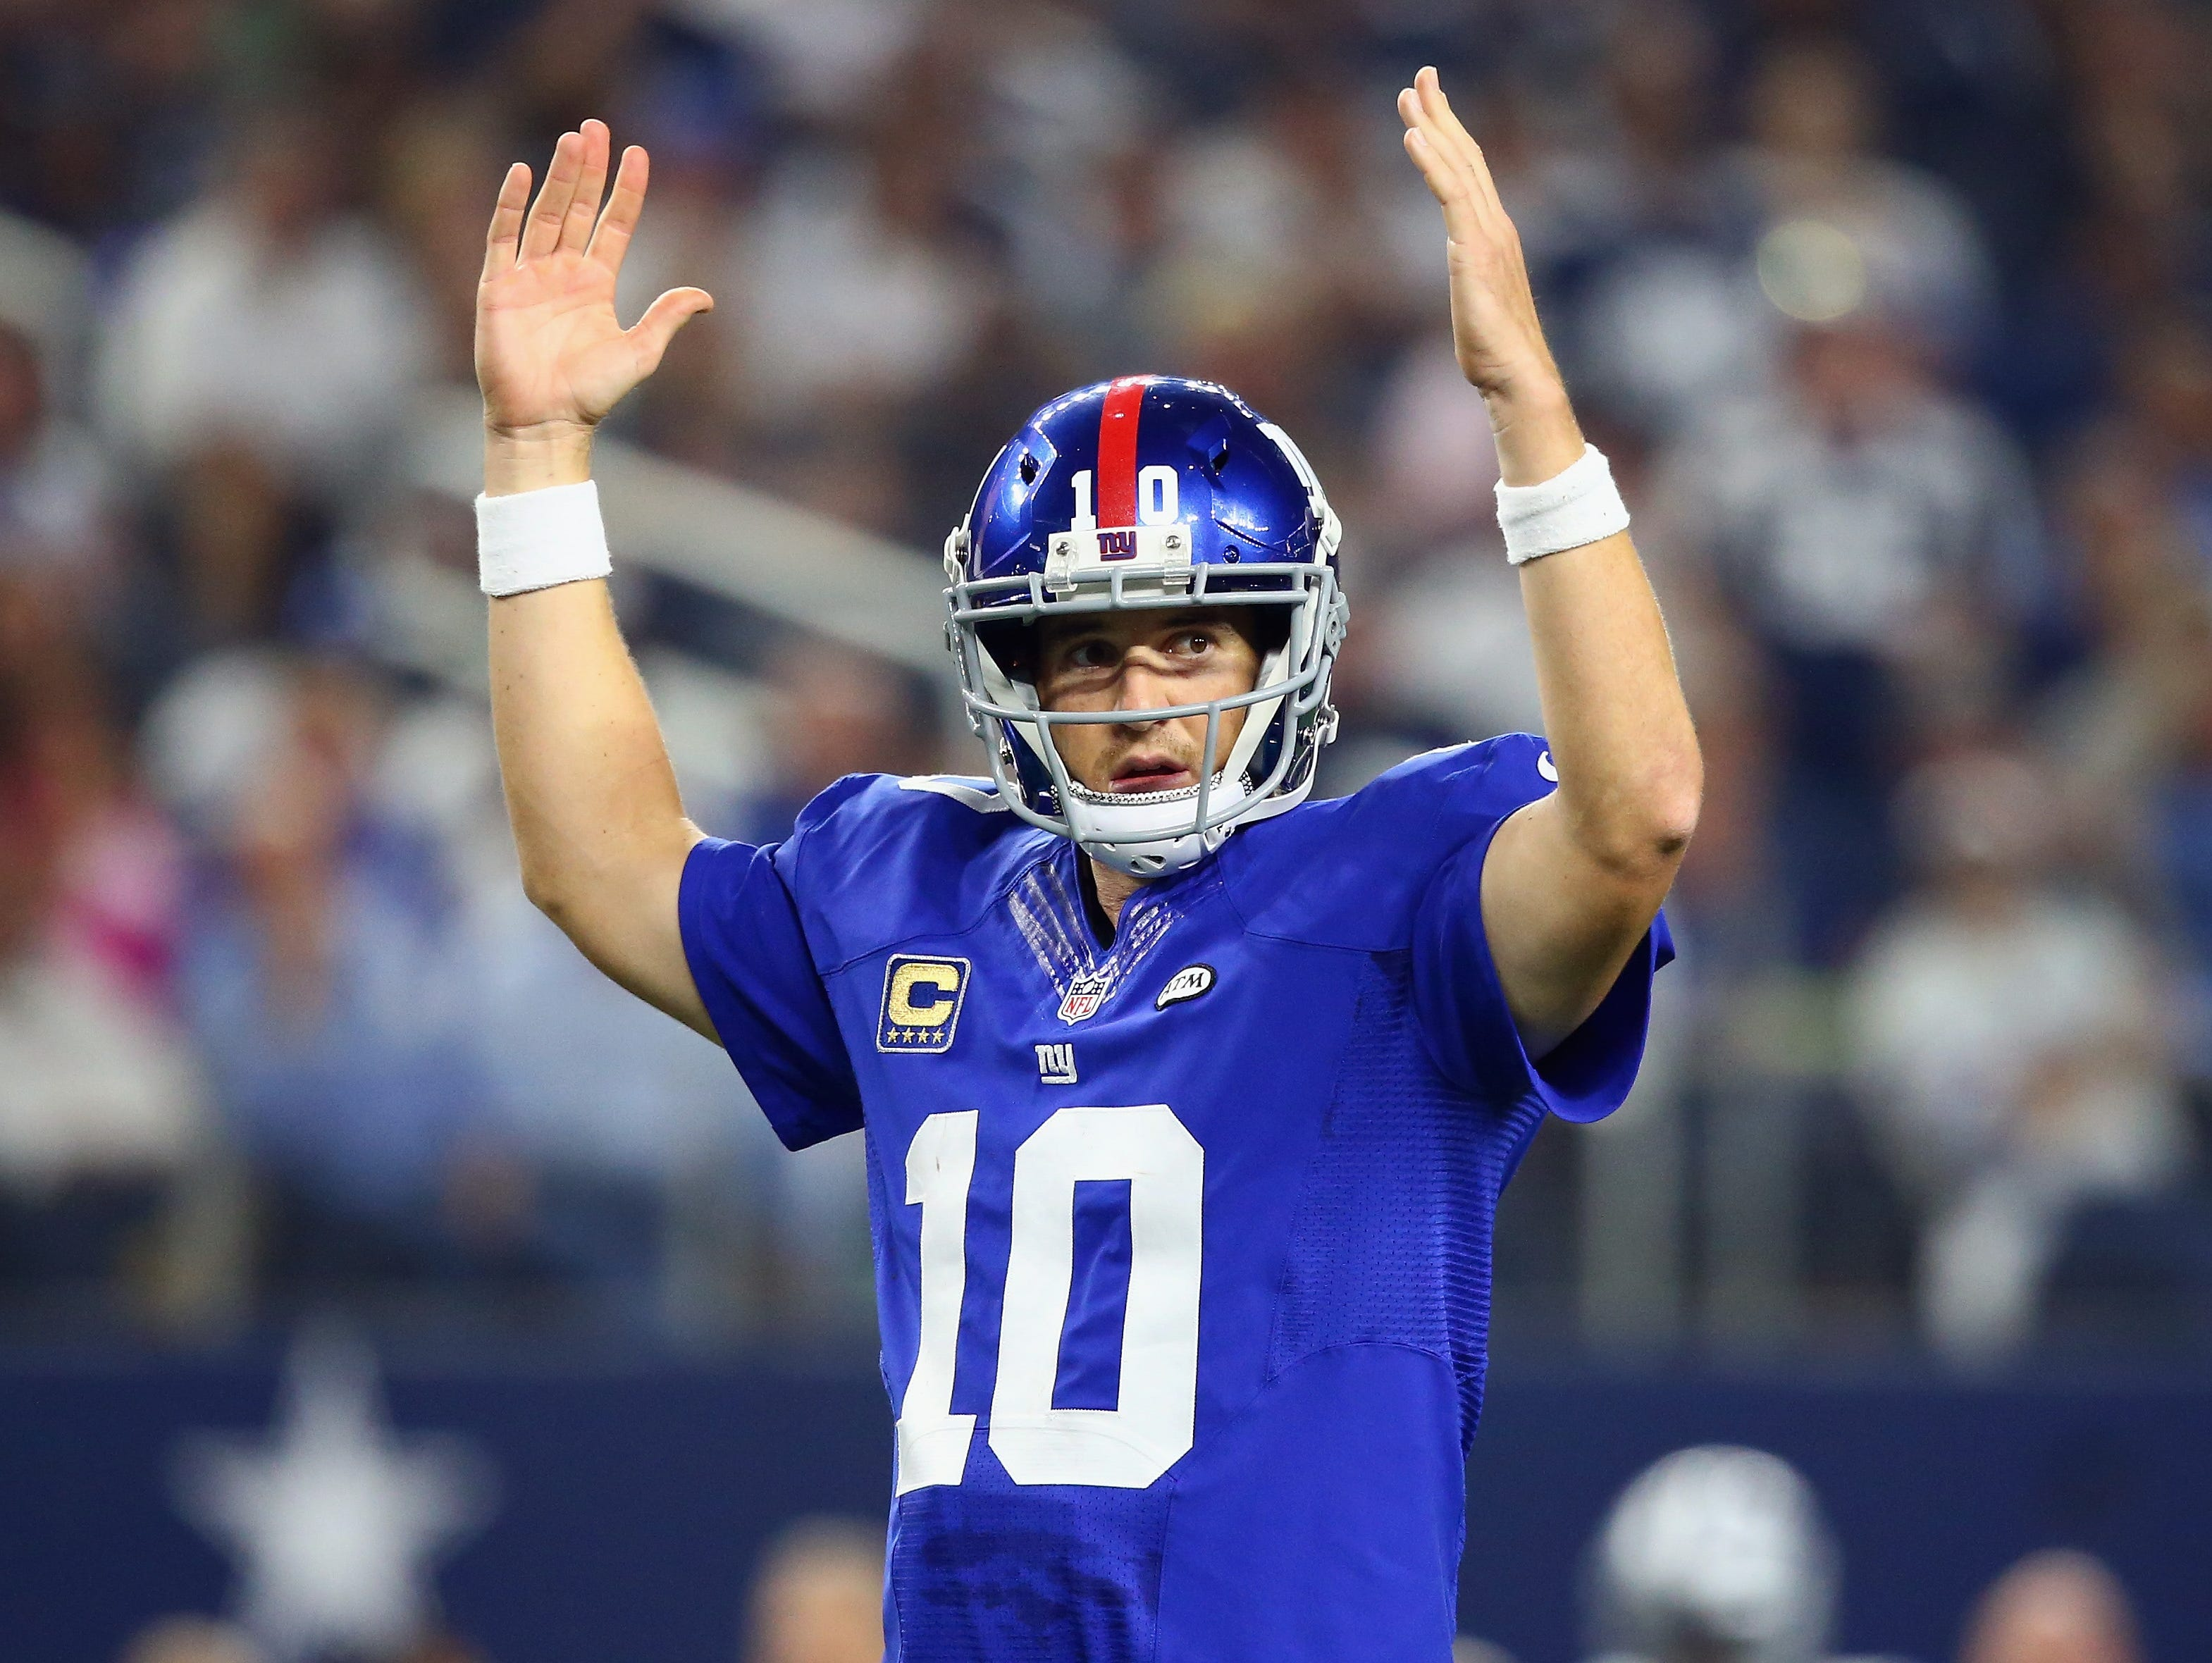 Giants quarterback Eli Manning will be the keynote speaker at the Jersey Shore Sports Awards in June of 2016.